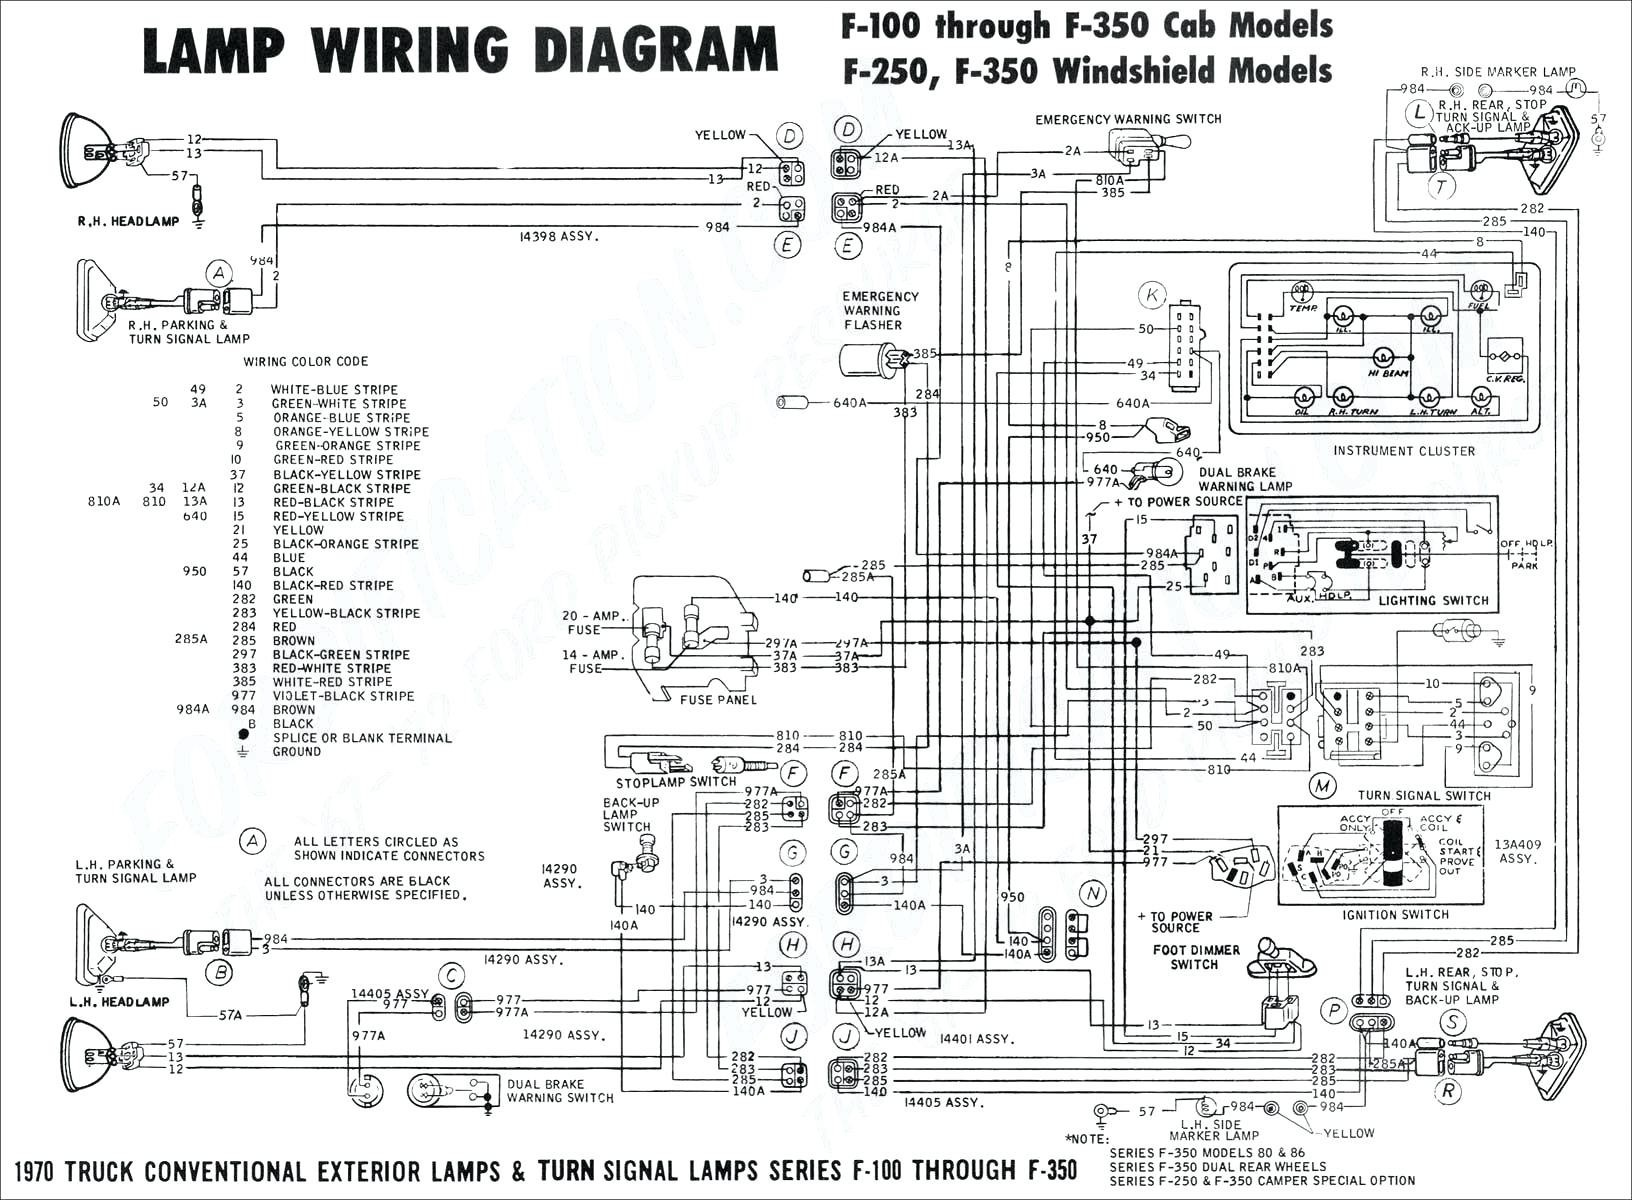 1991 ford F150 Engine Diagram 1991 ford F 150 Tail Light Wiring Diagram Trusted Wiring Diagrams • Of 1991 ford F150 Engine Diagram